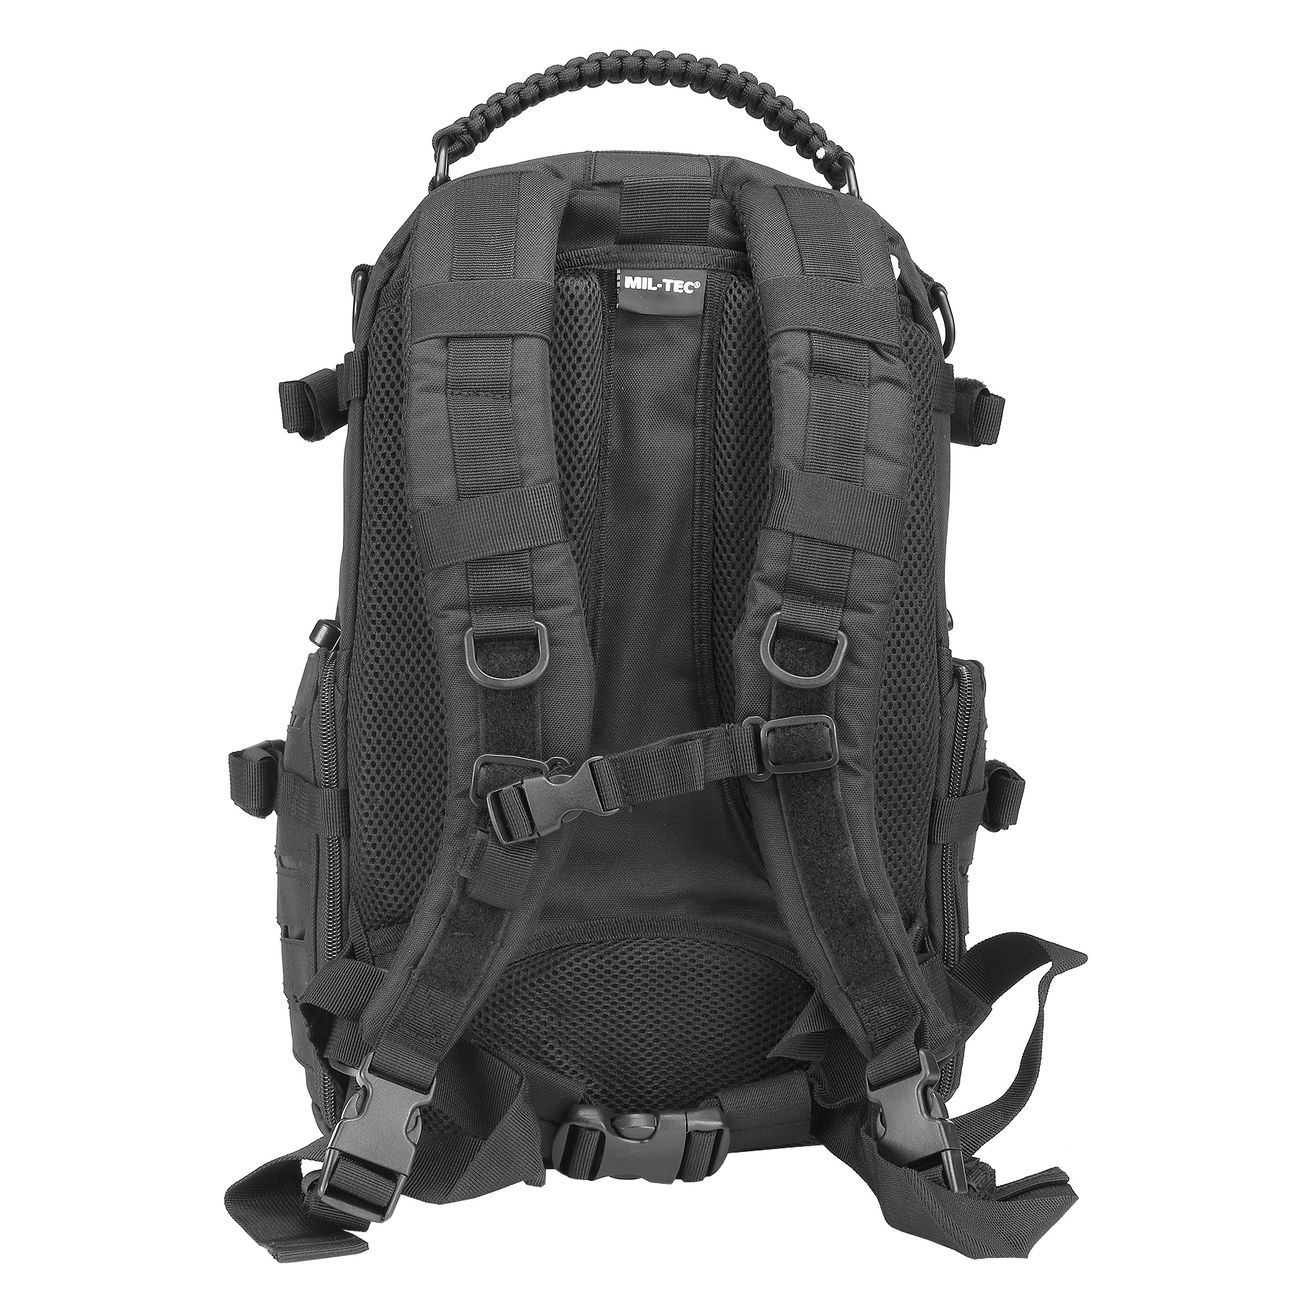 Mil-Tec Rucksack Mission Pack Laser Cut Small schwarz 2